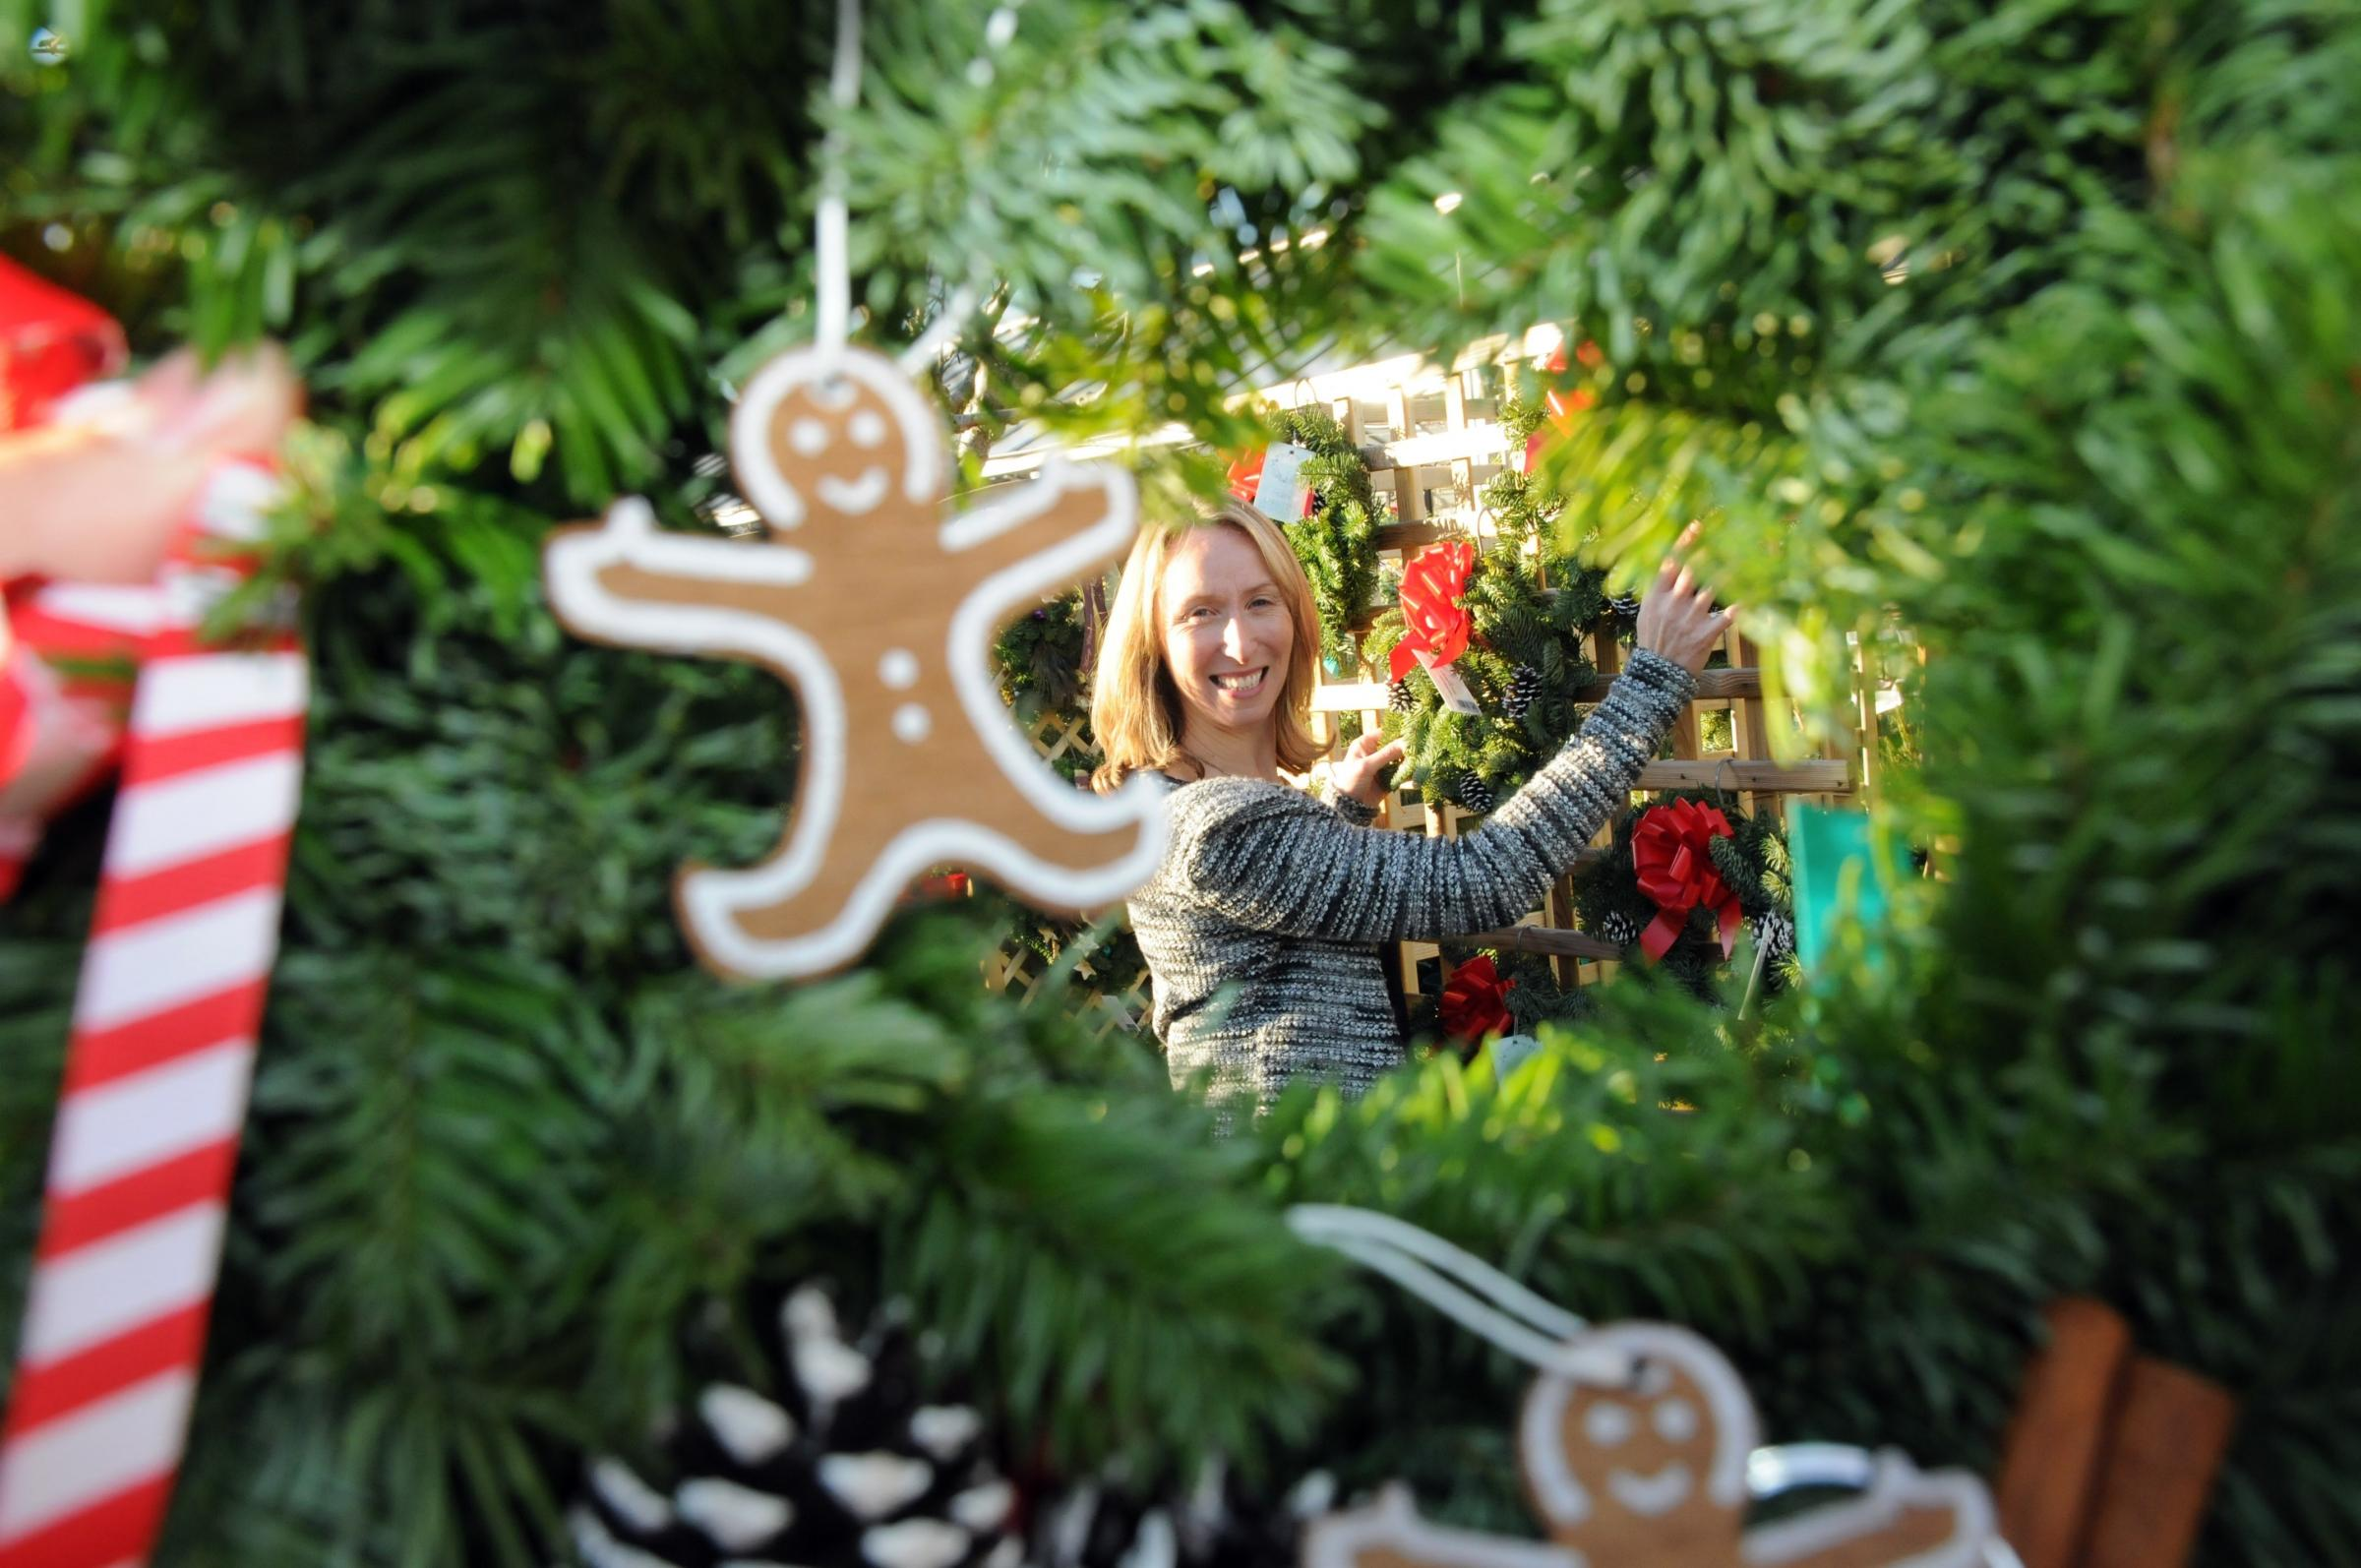 GARDENING: Christmas trees, poinsettias and the scent of the season, with Jill Kerr